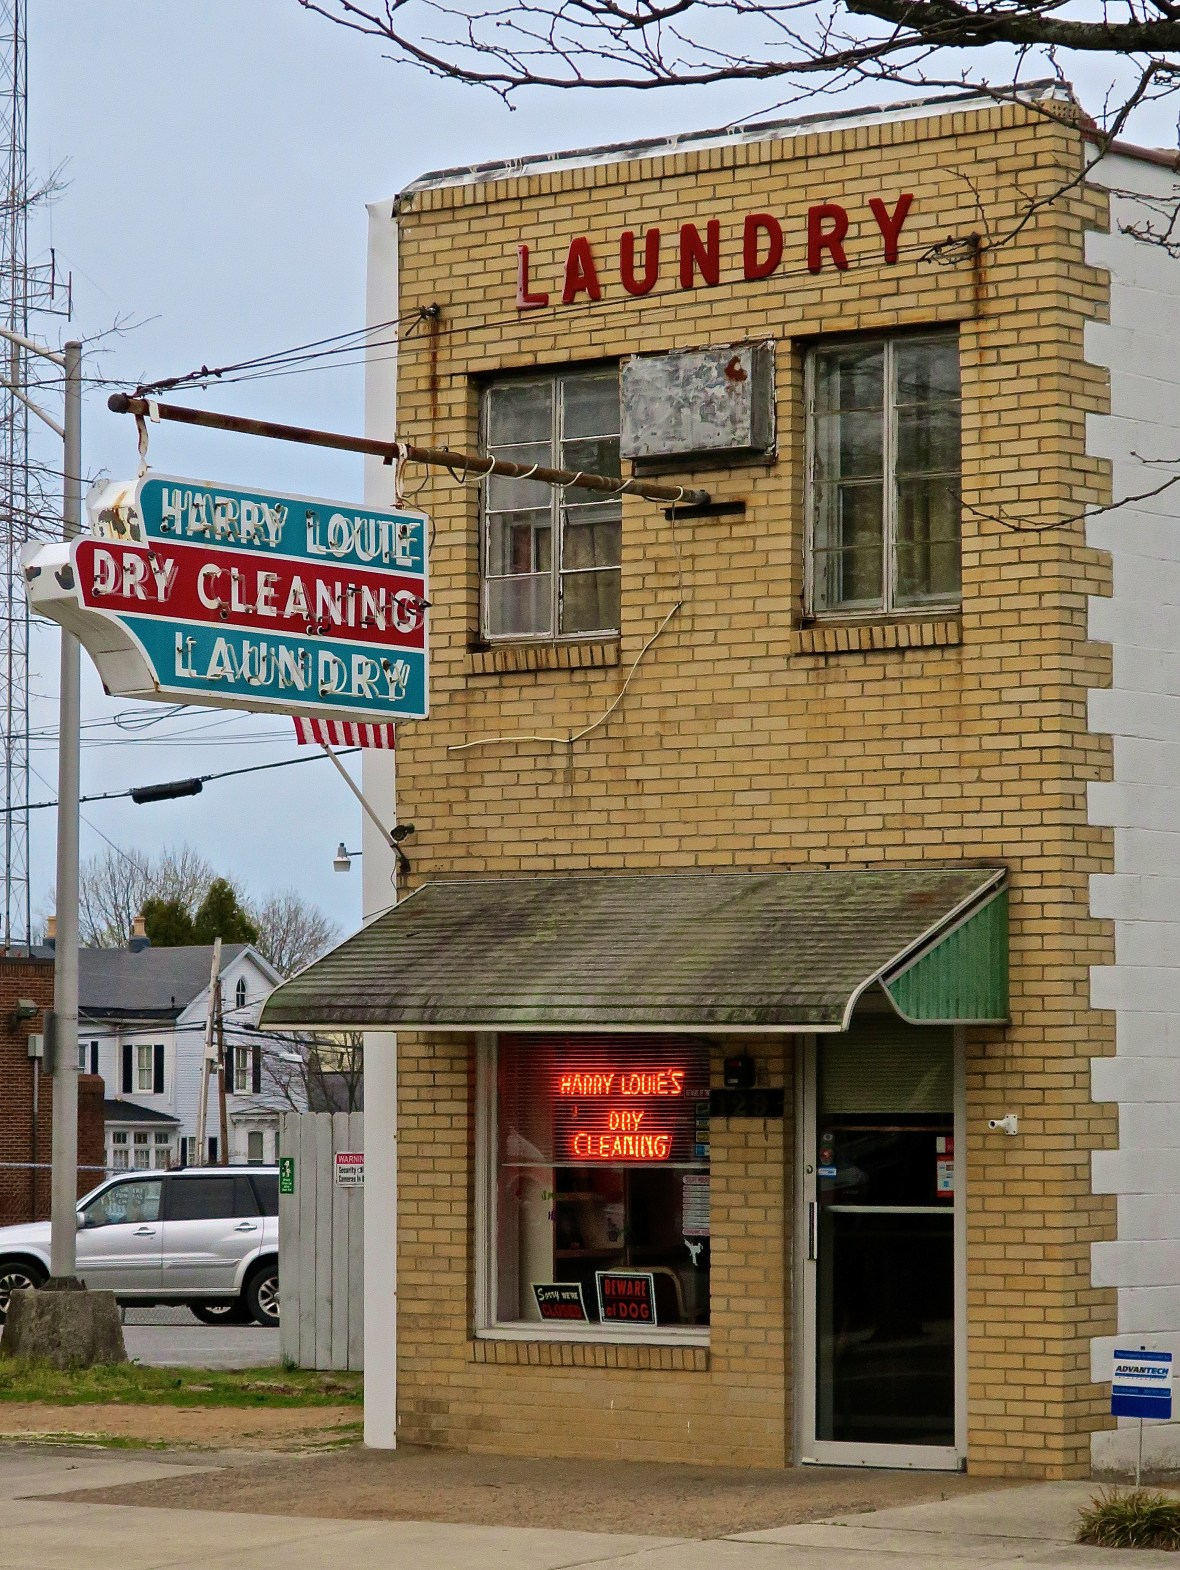 Harry Louie Laundry and Dry Cleaning - 129 South Governors Avenue, Dover, Delaware U.S.A. - April 5, 2017